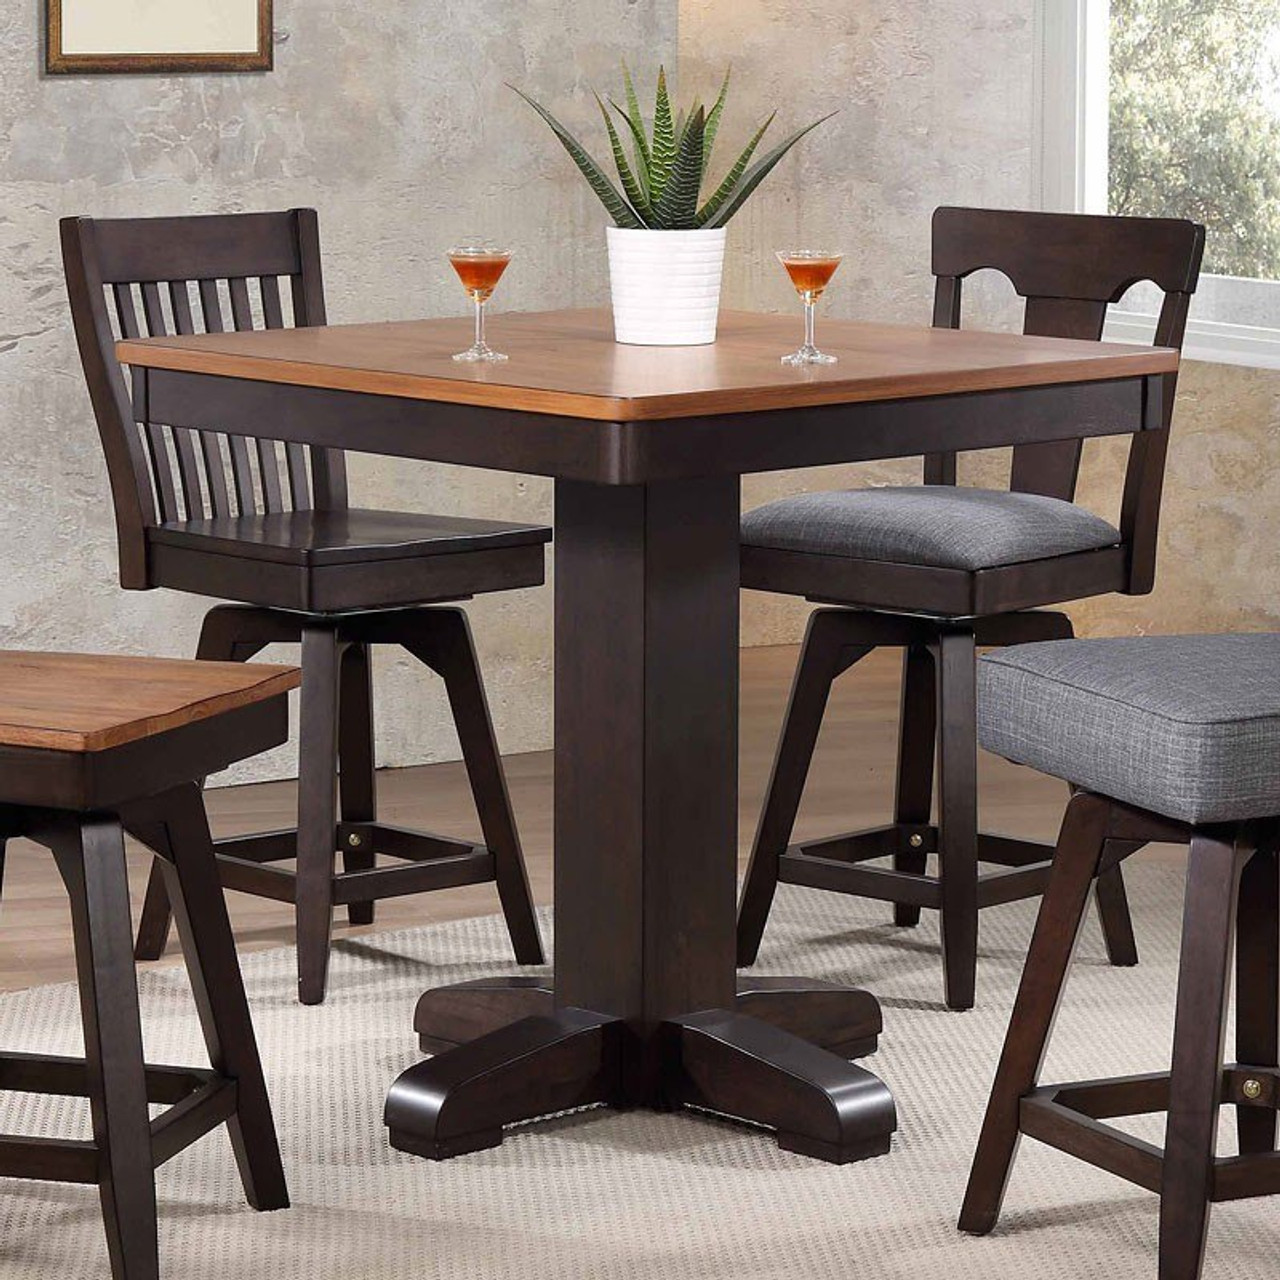 Picture of: Eci Choices Black Oak 36 Square Pub Table Free Local Delivery Gebhardts Com